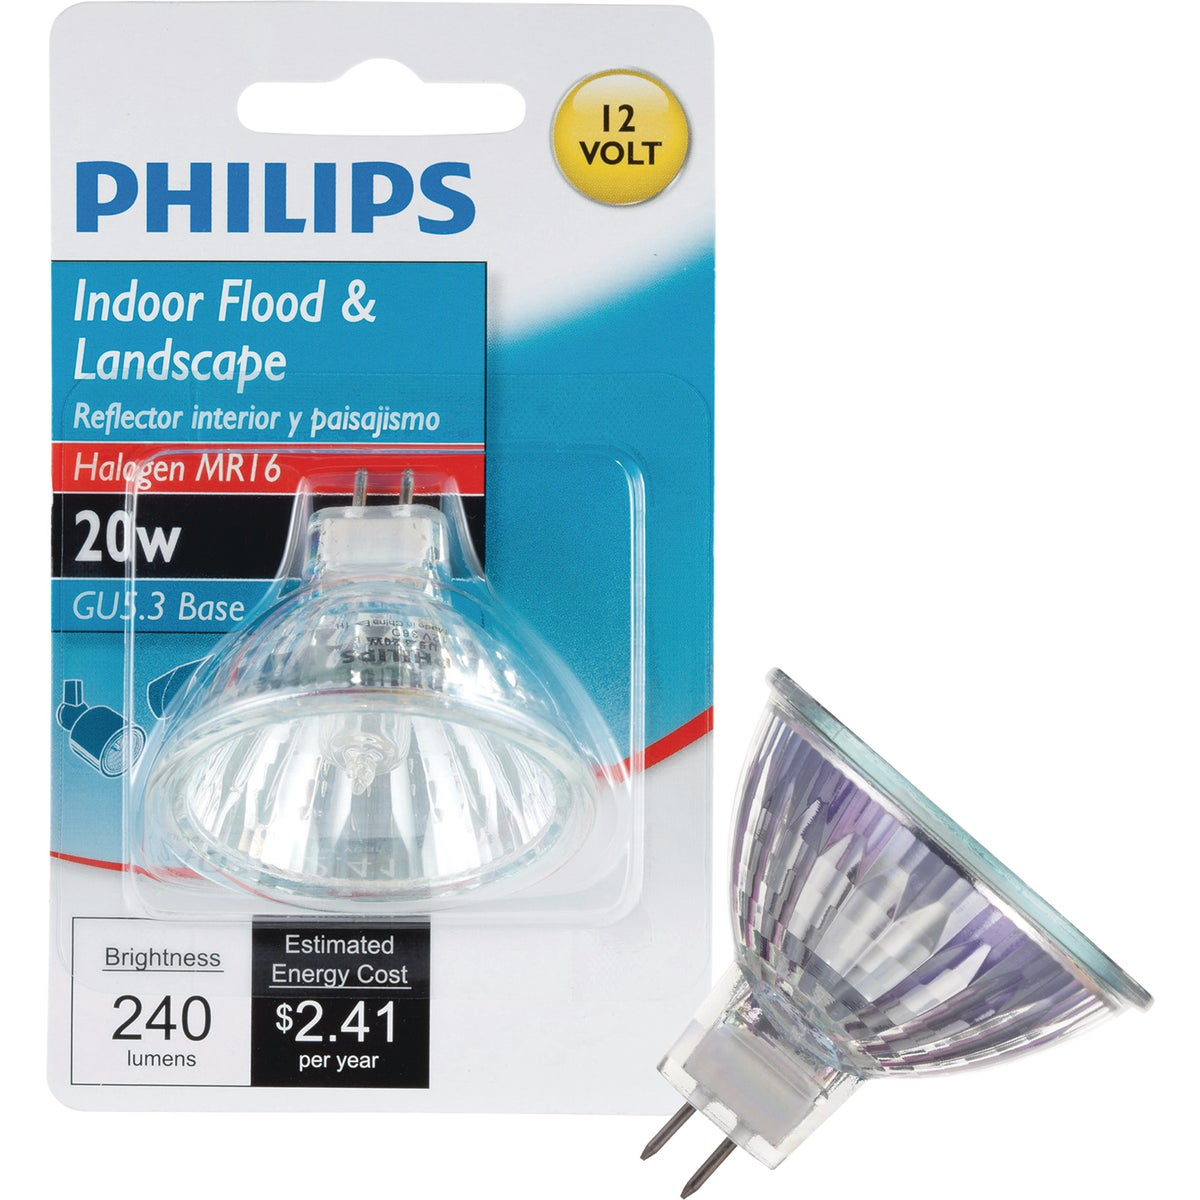 20W MR16 FLOOD HAL BULB